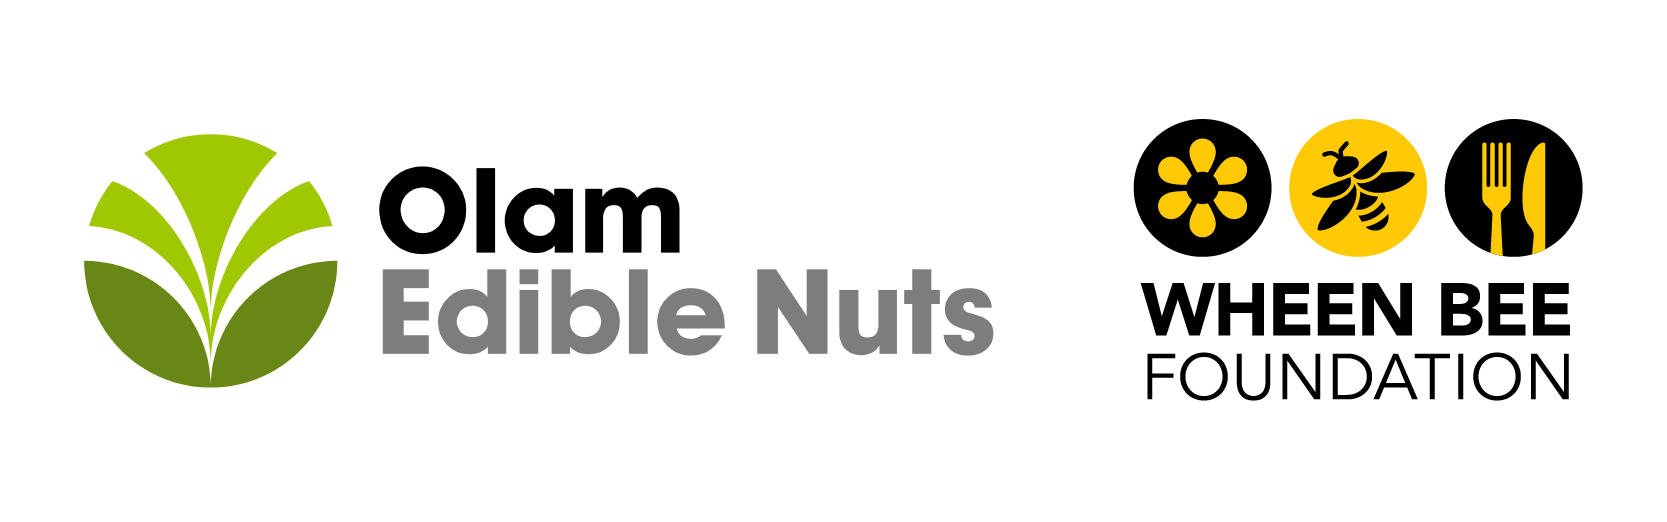 OLAM EDIBLE NUTS AND THE WHEEN BEE FOUNDATION Poster